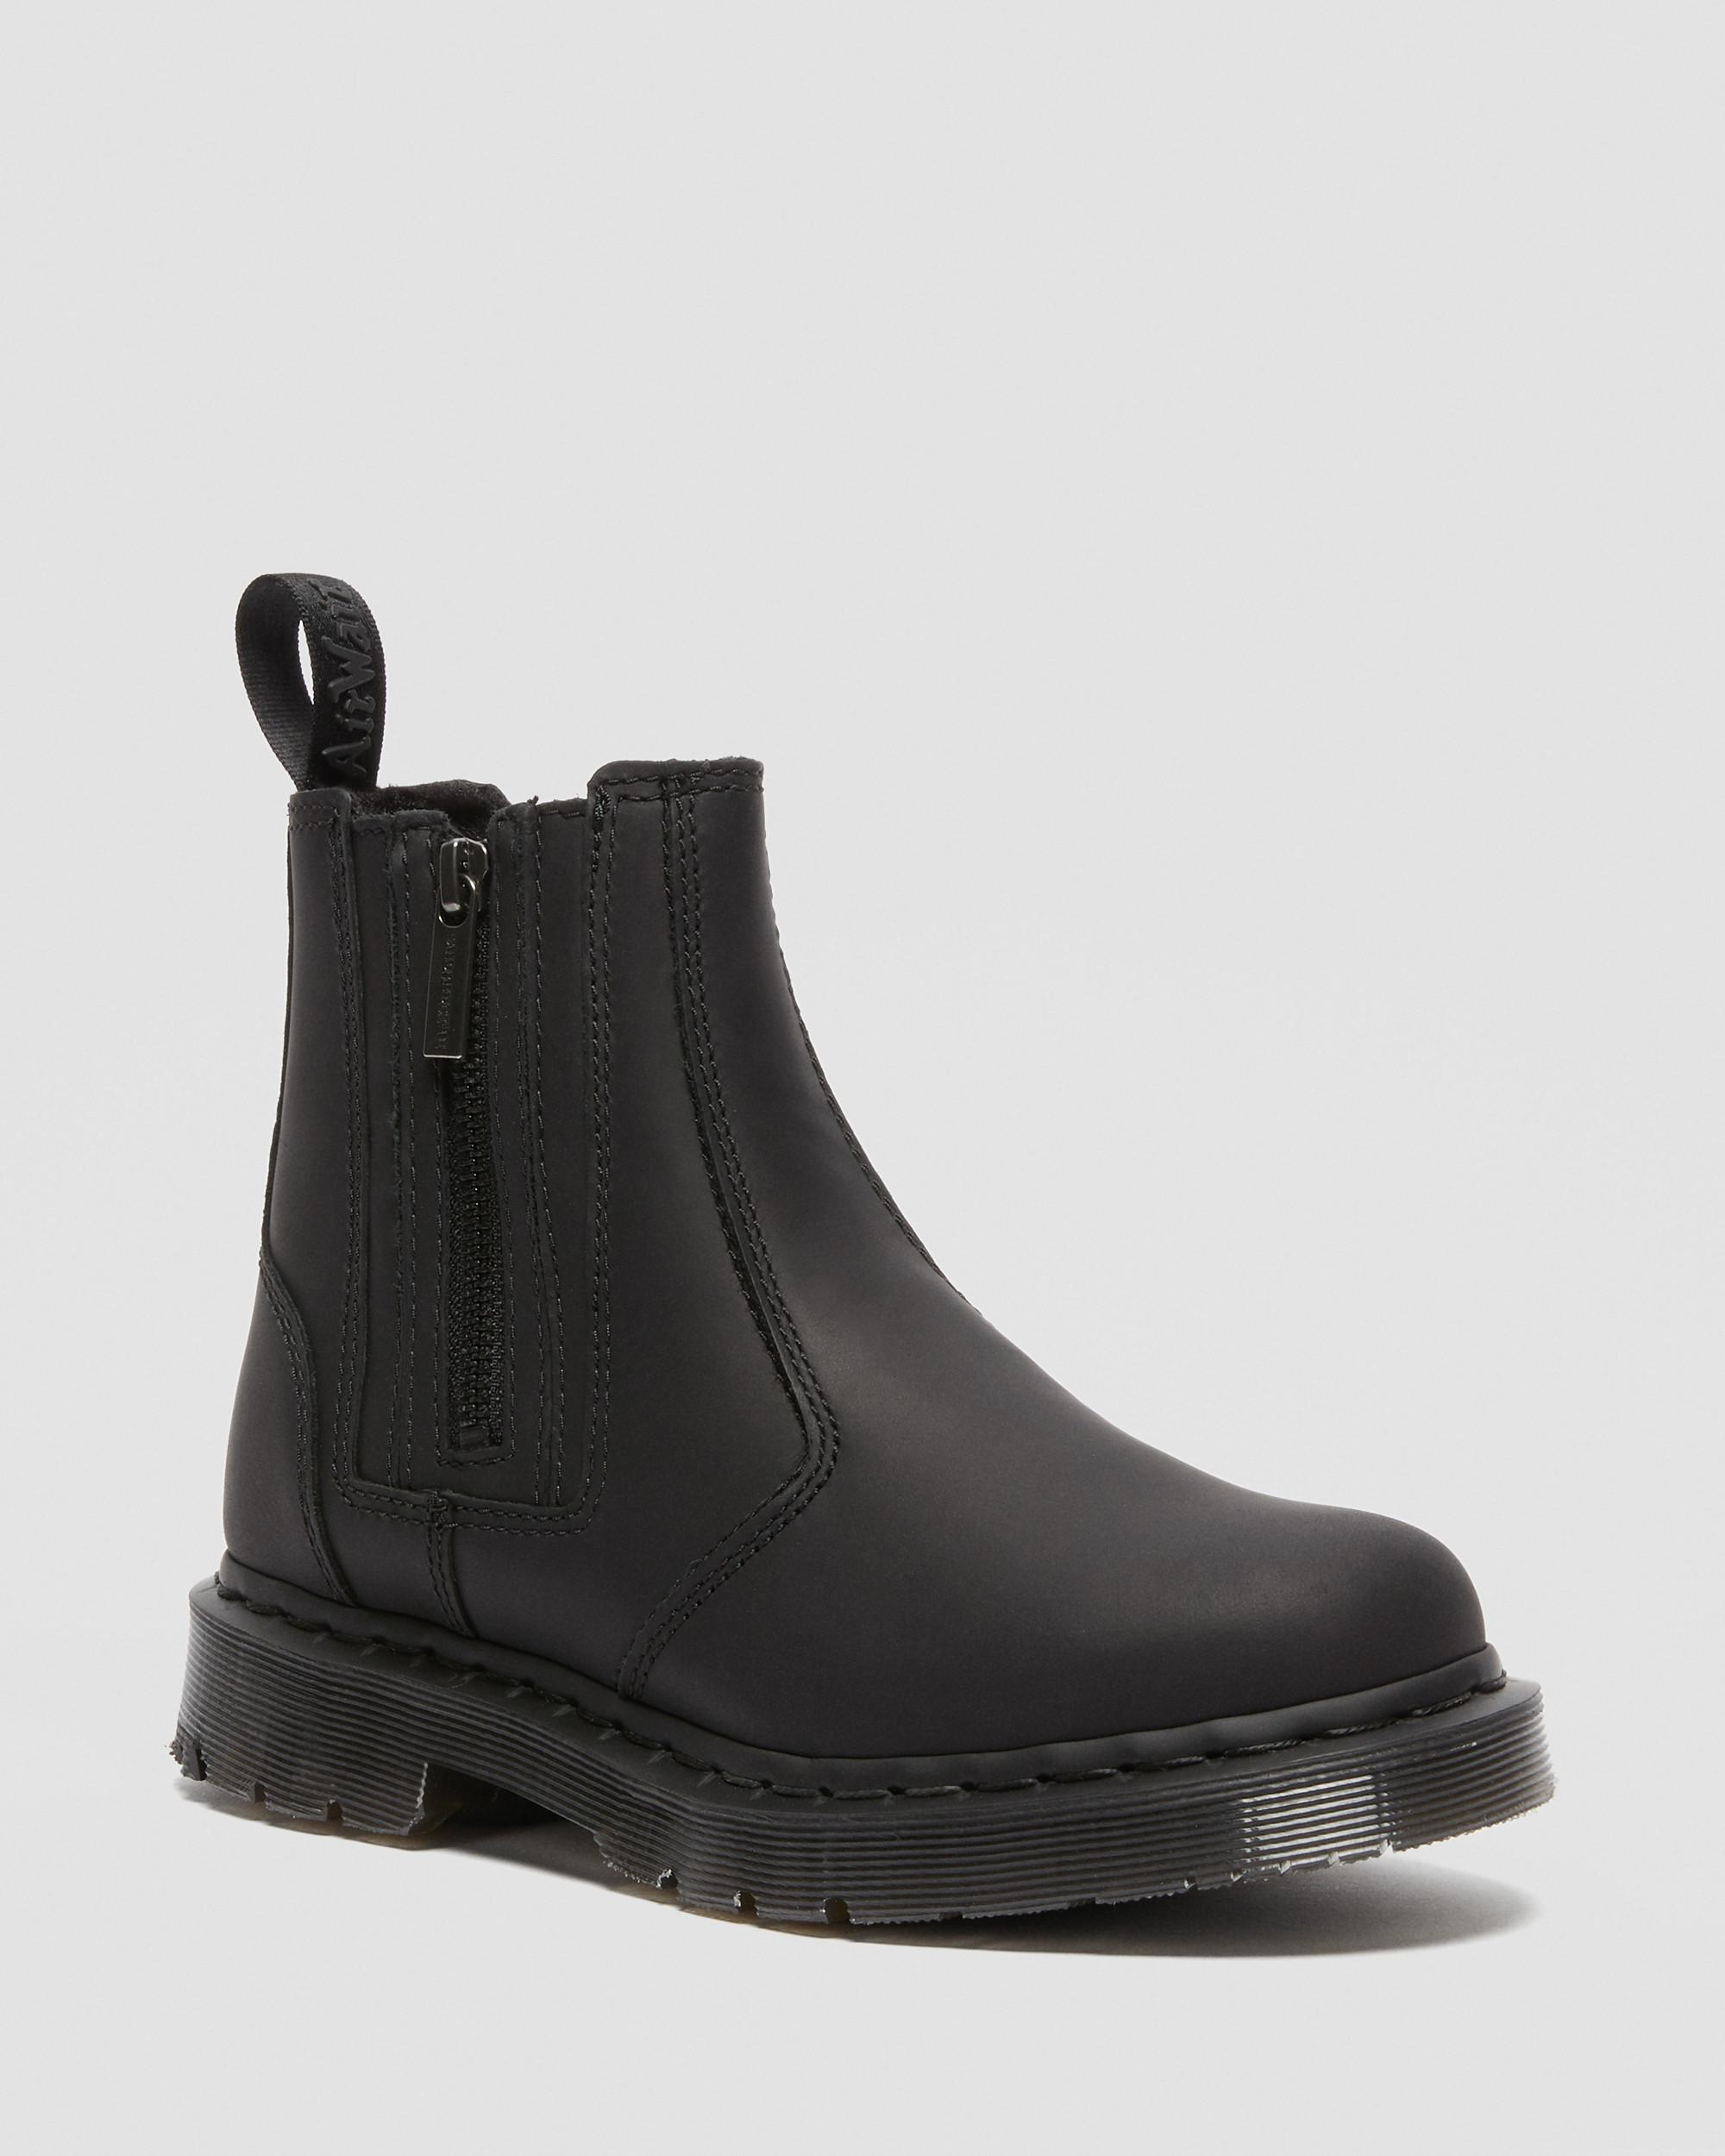 2976 DM'S WINTERGRIP CHELSEA BOOTS | DM's Wintergrip Boots